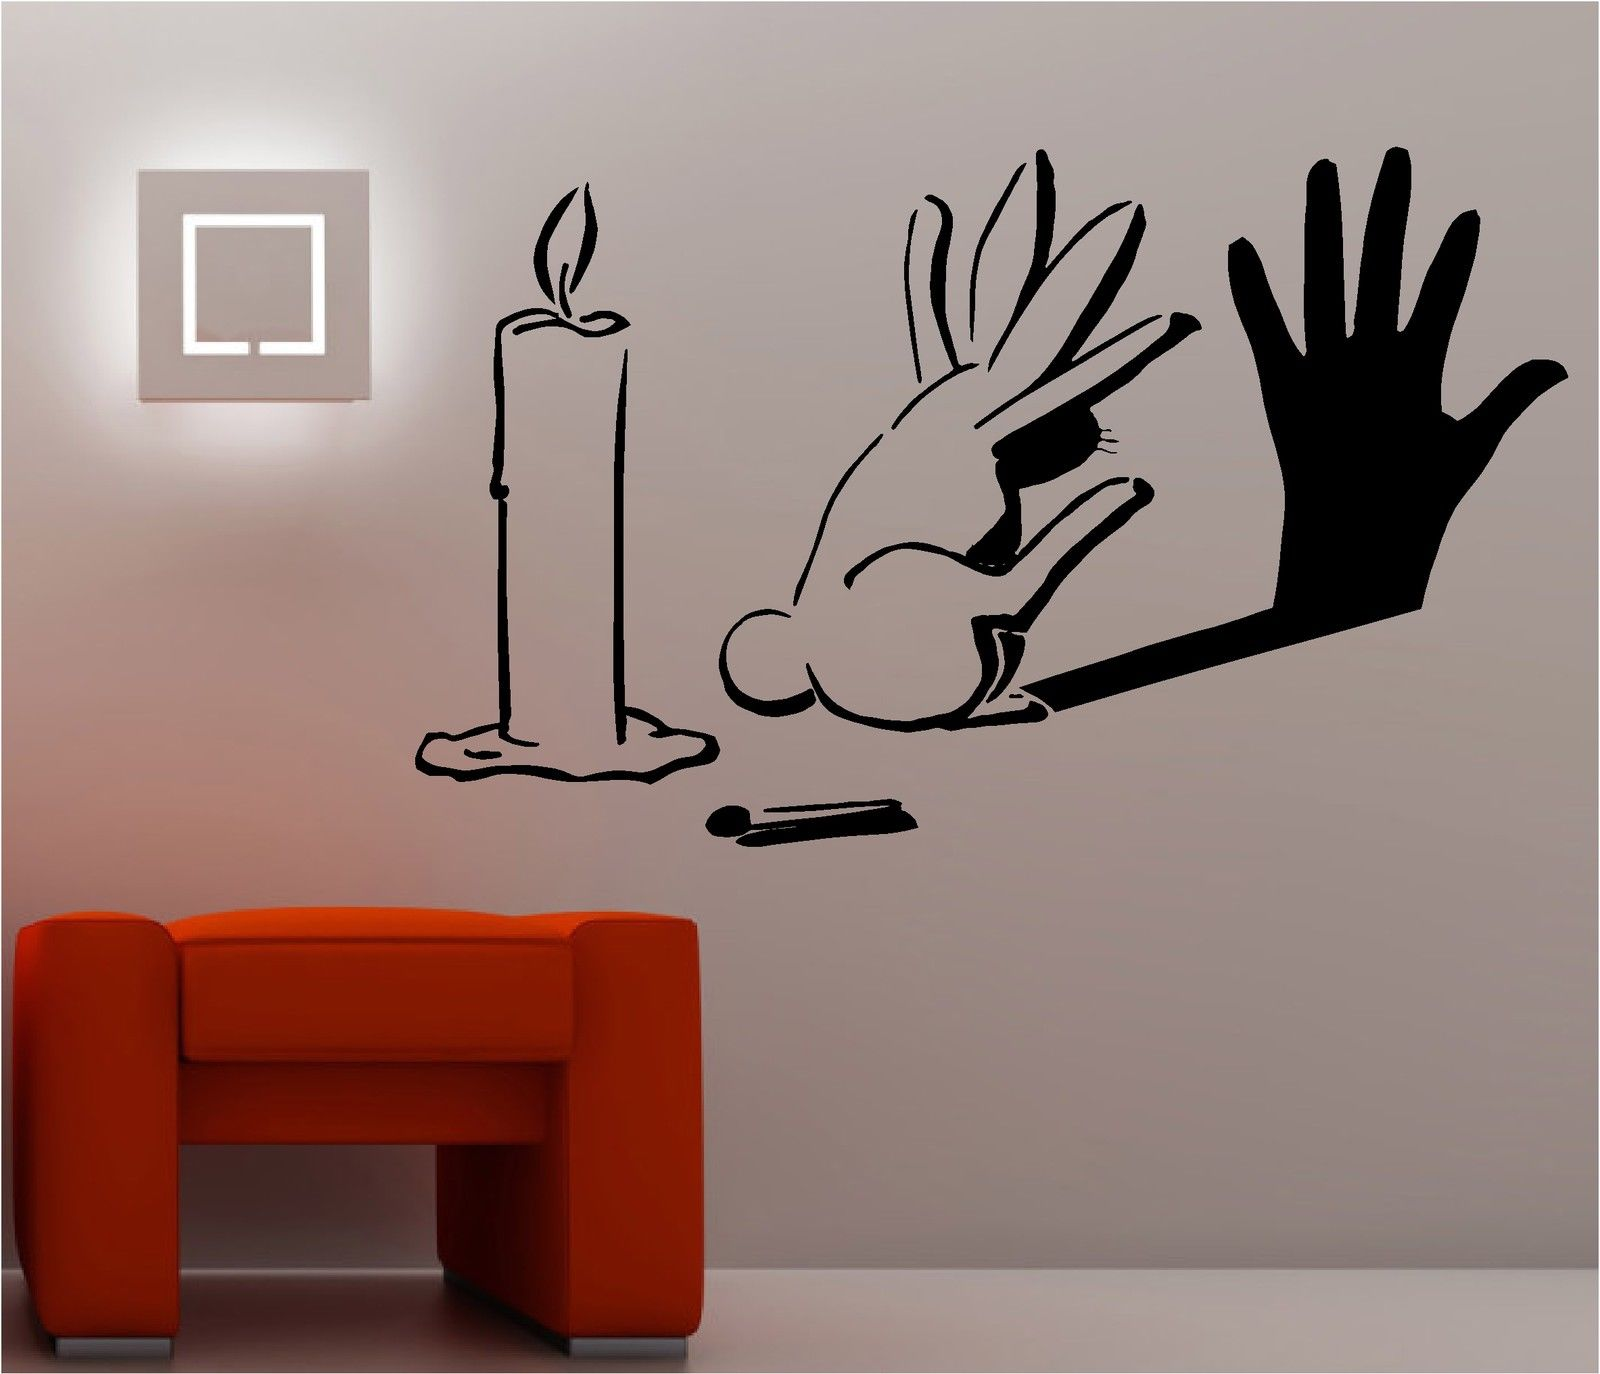 Graffiti wall art bedroom - Rabbit Shadow Graffiti Wall Art Sticker Lounge Bedroom Kitchen Banksy Style Free Shipping China